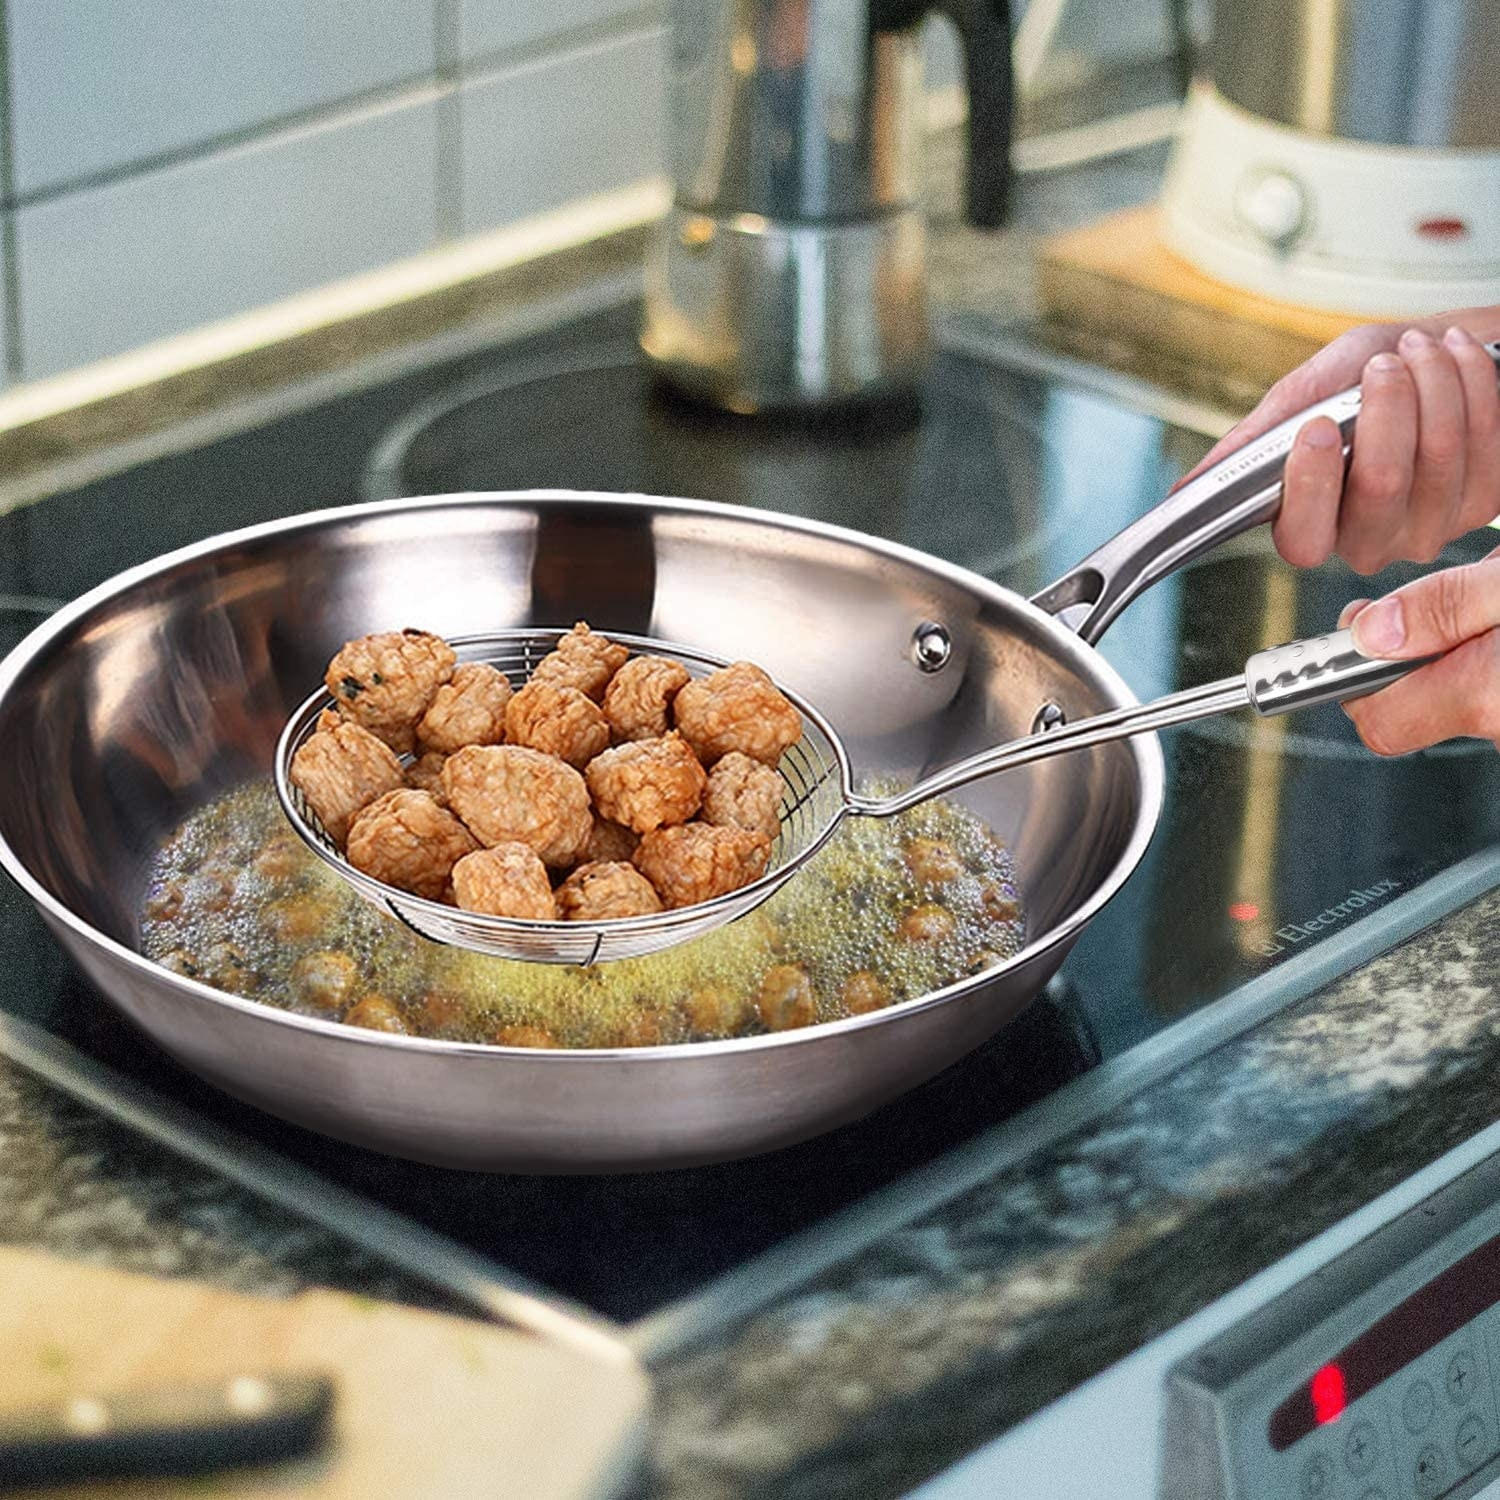 A person strains food from a pan of oil